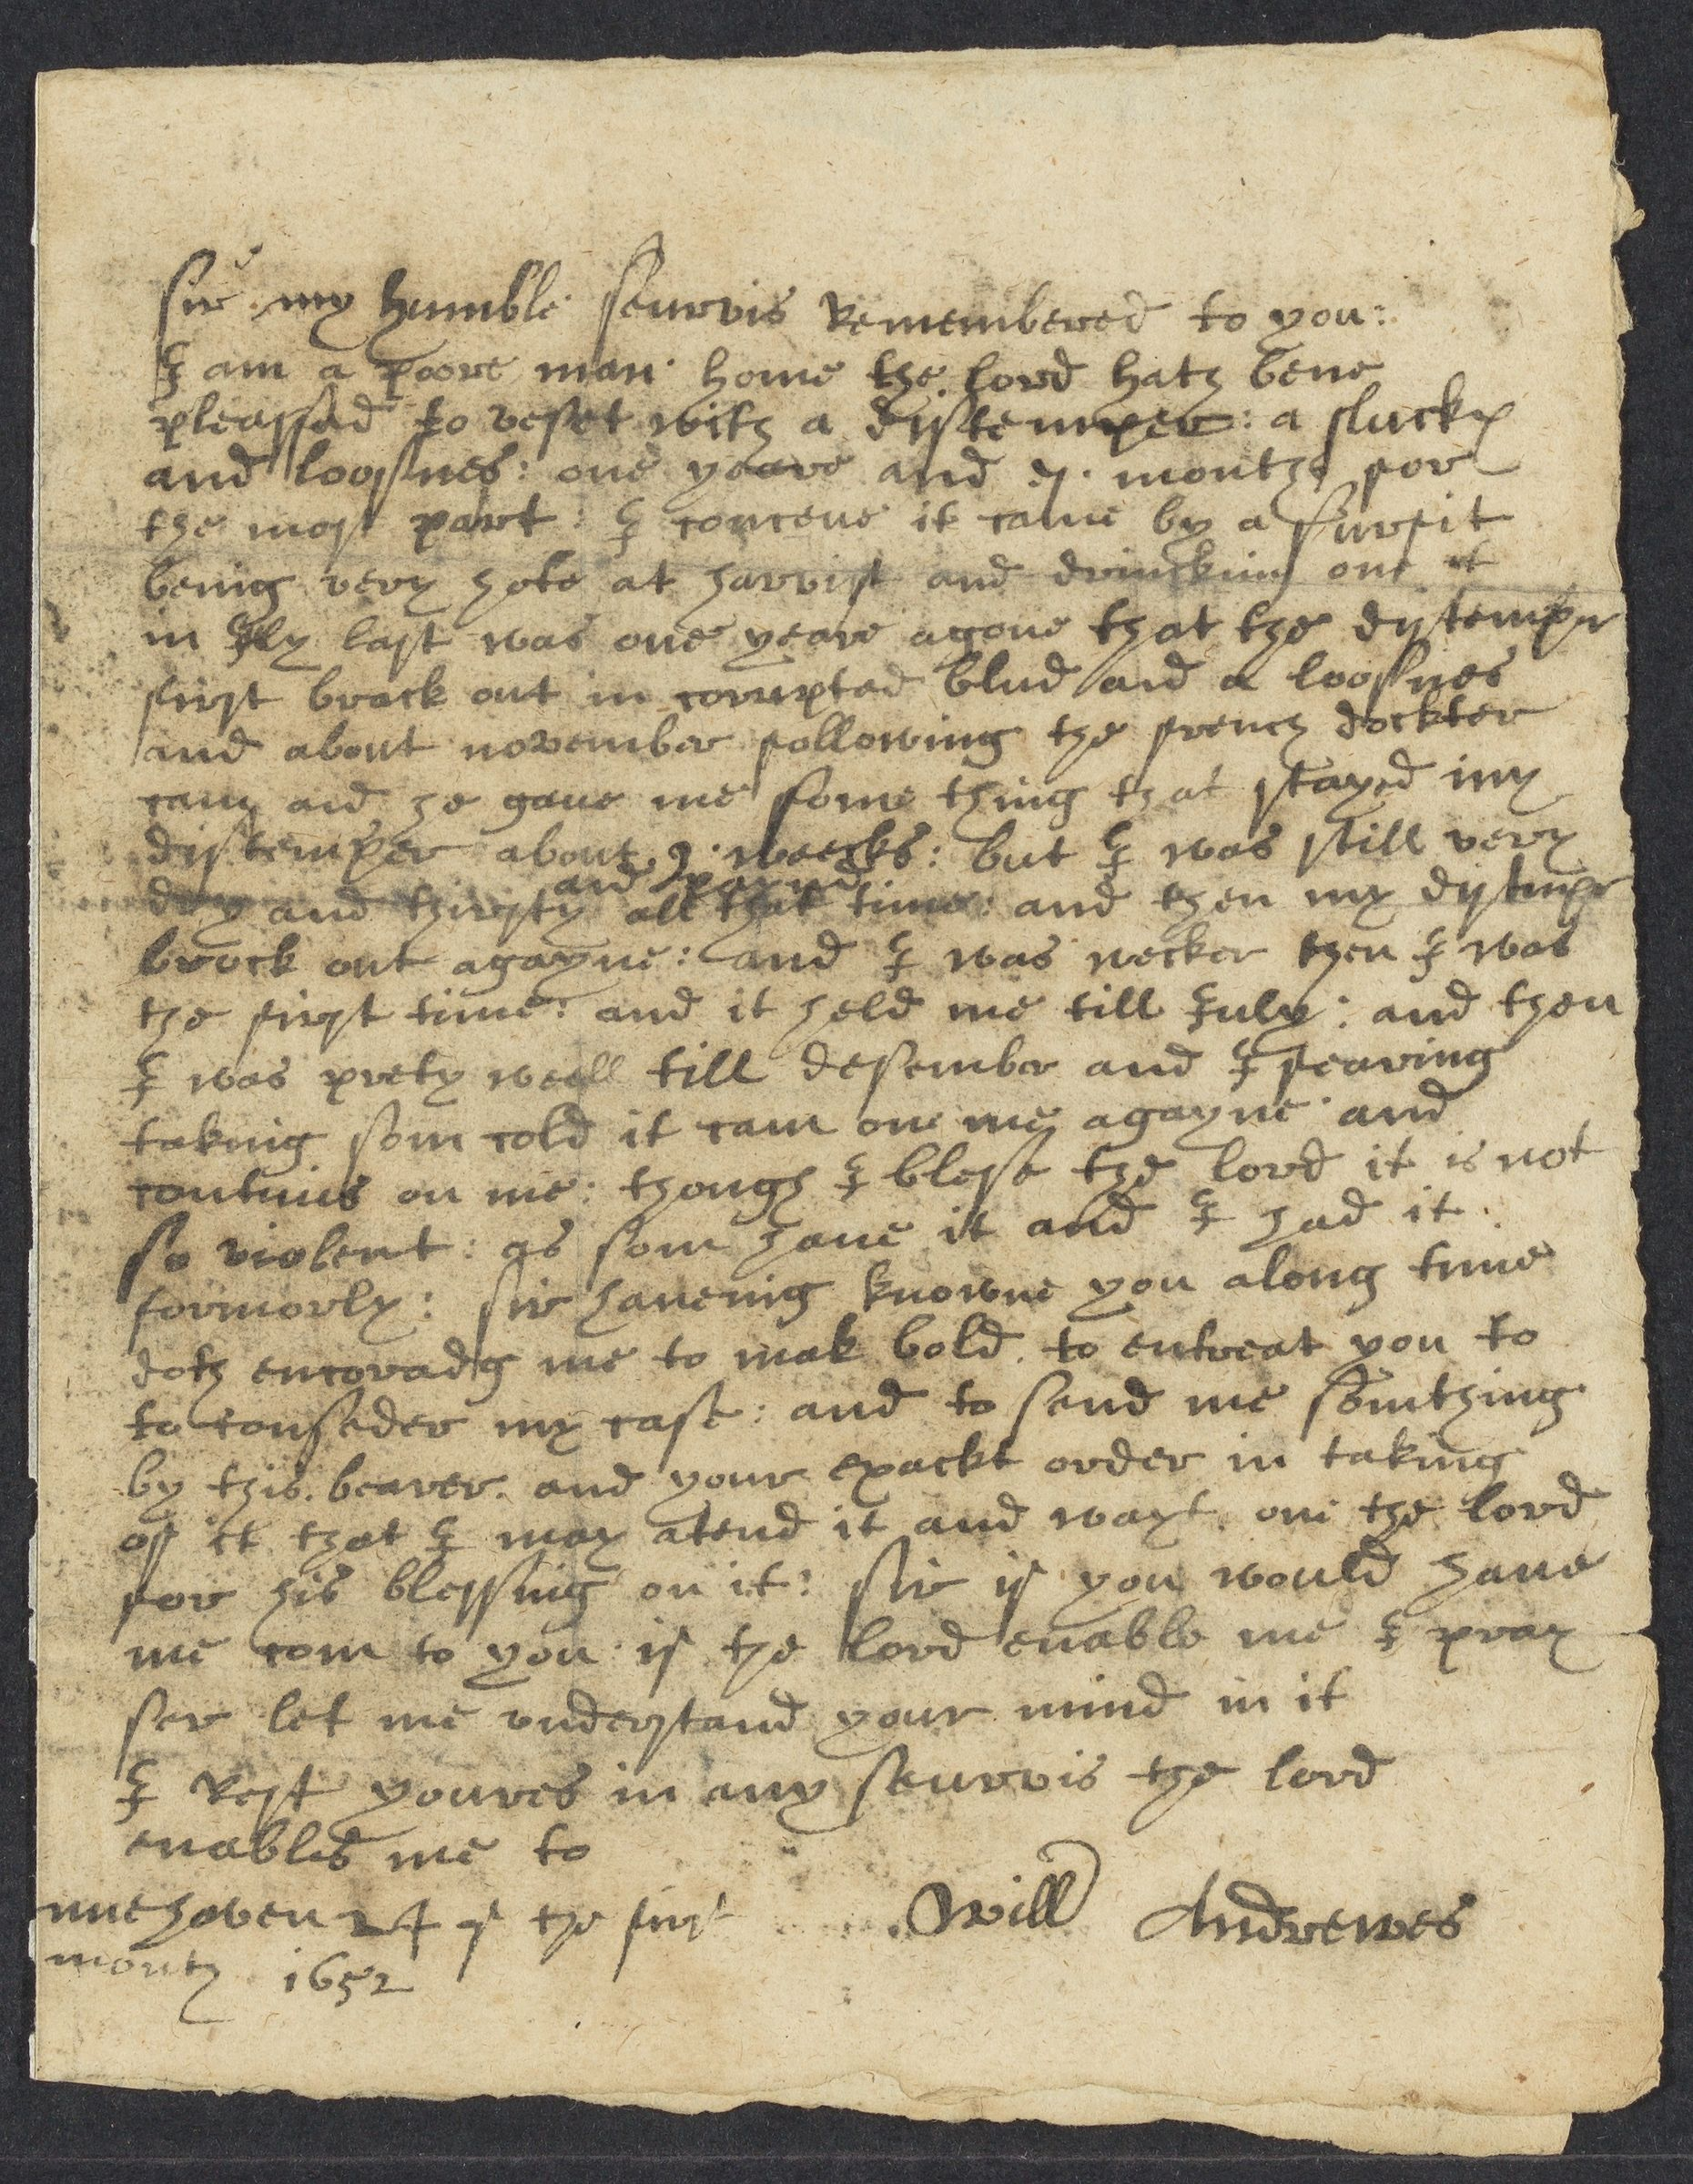 Andrewes, Will, autographed letter signed to John Winthrop; New Haven, 1 side (2 pages), 1652 January 24